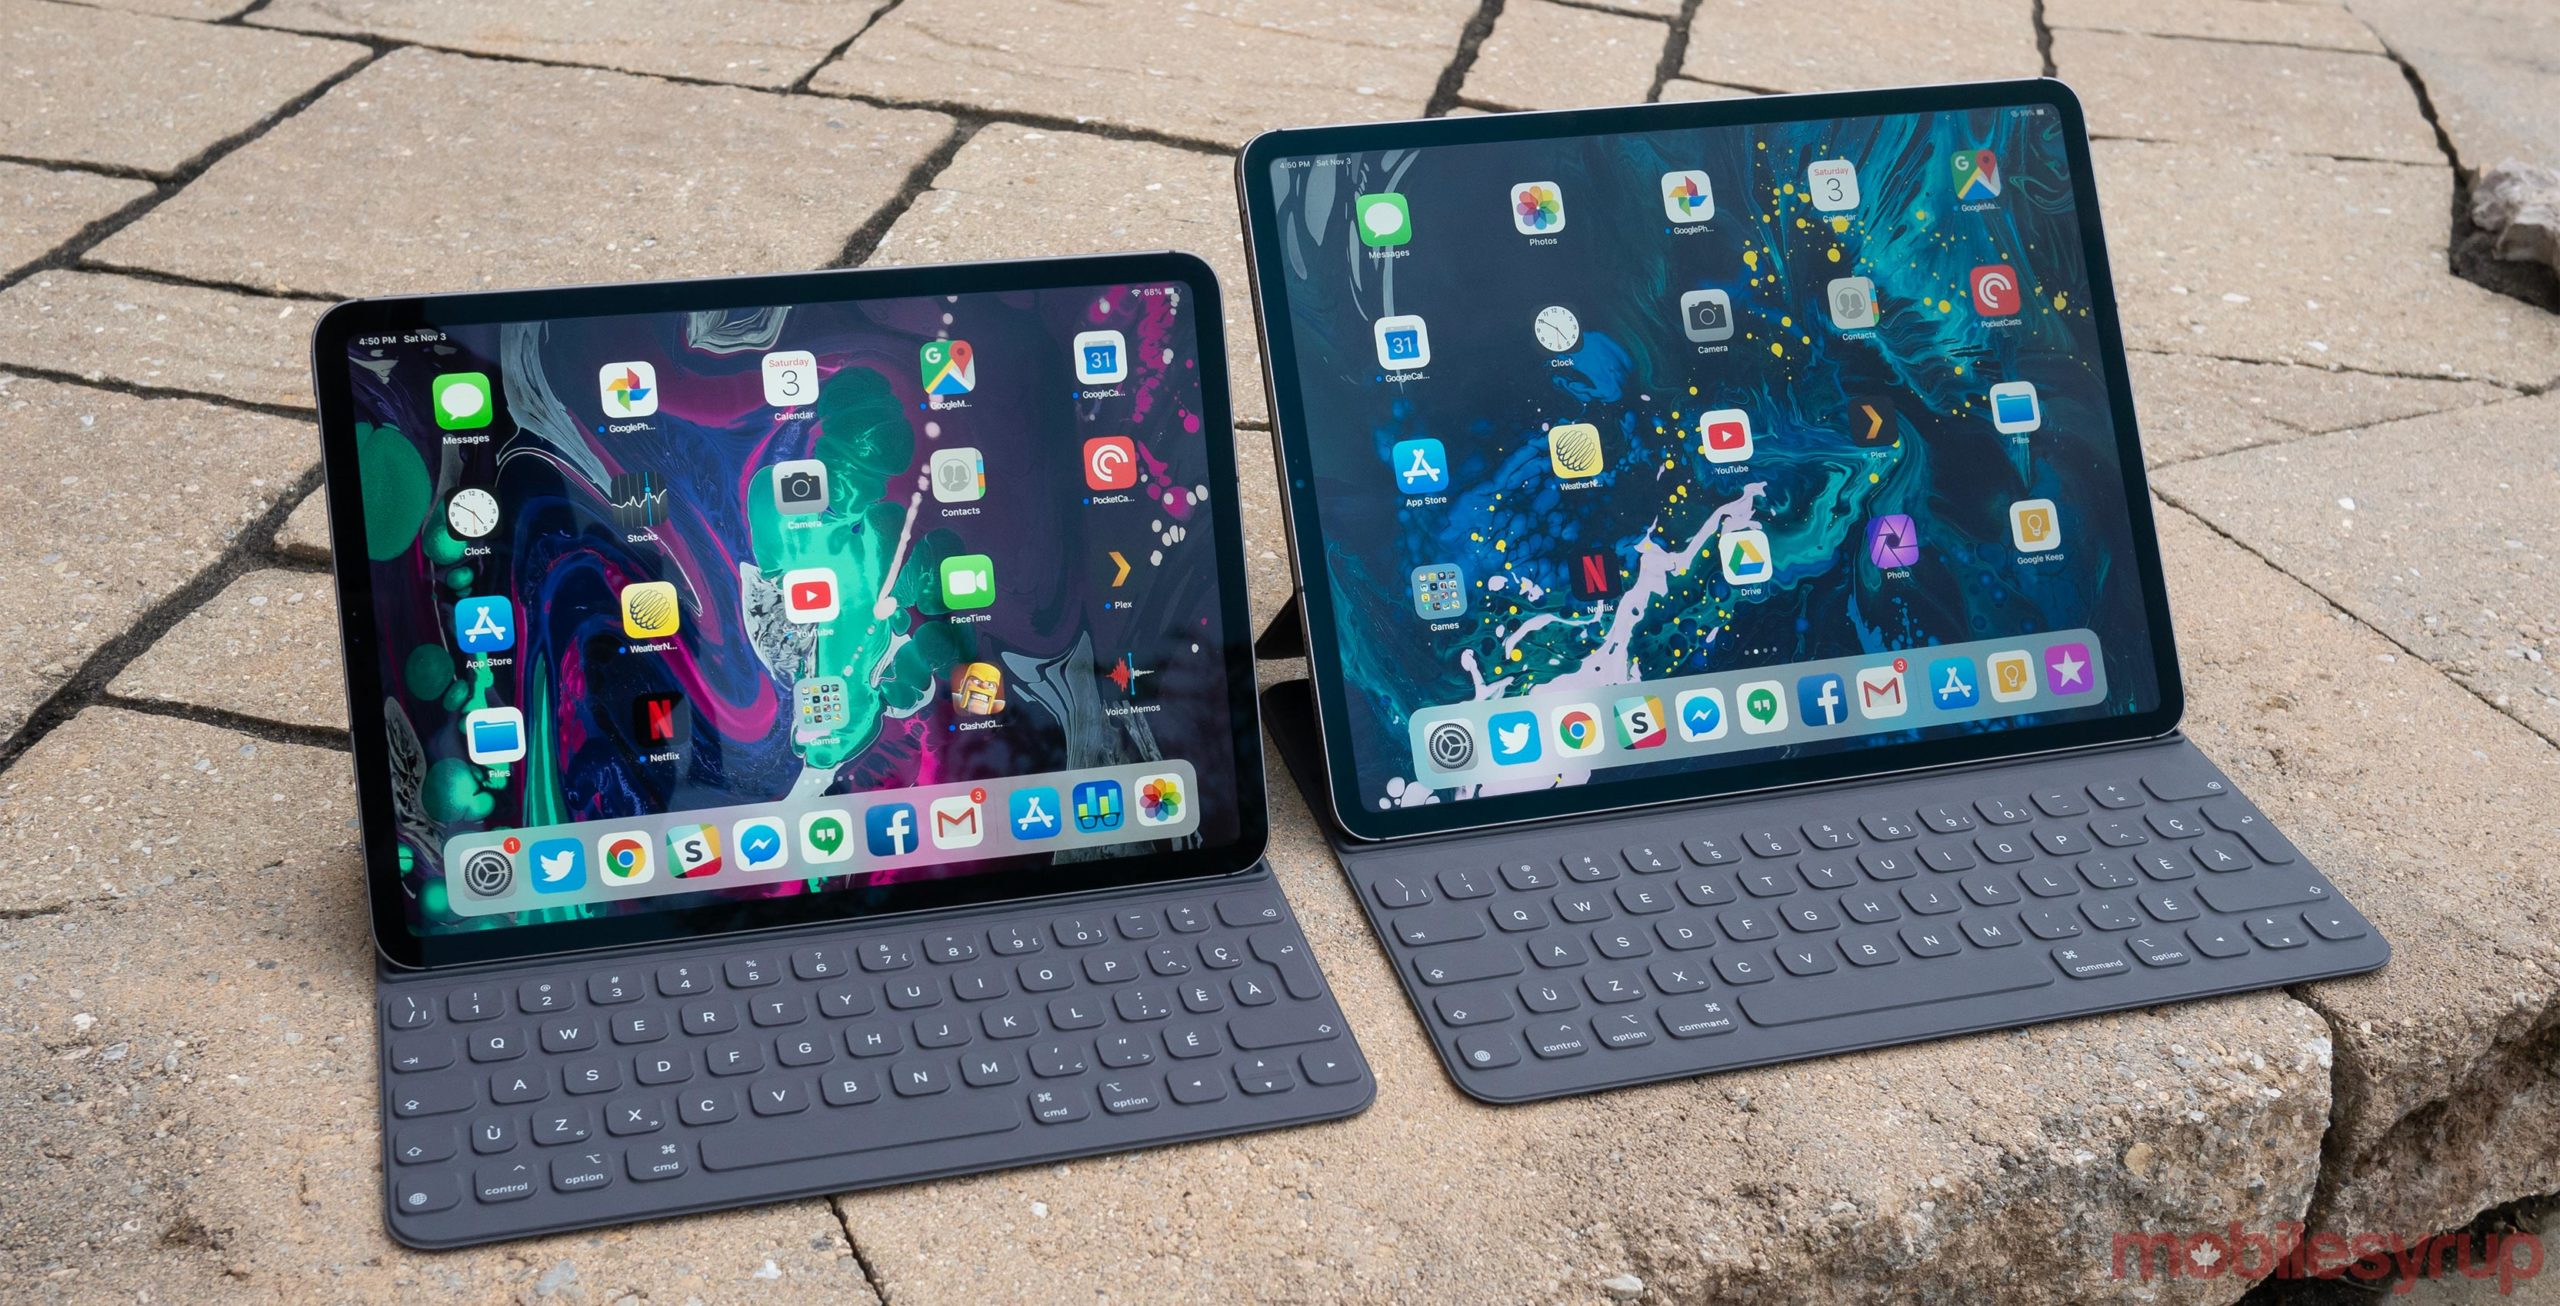 Apple might bring its new scissor switch keyboard to the iPad Pro in 2020